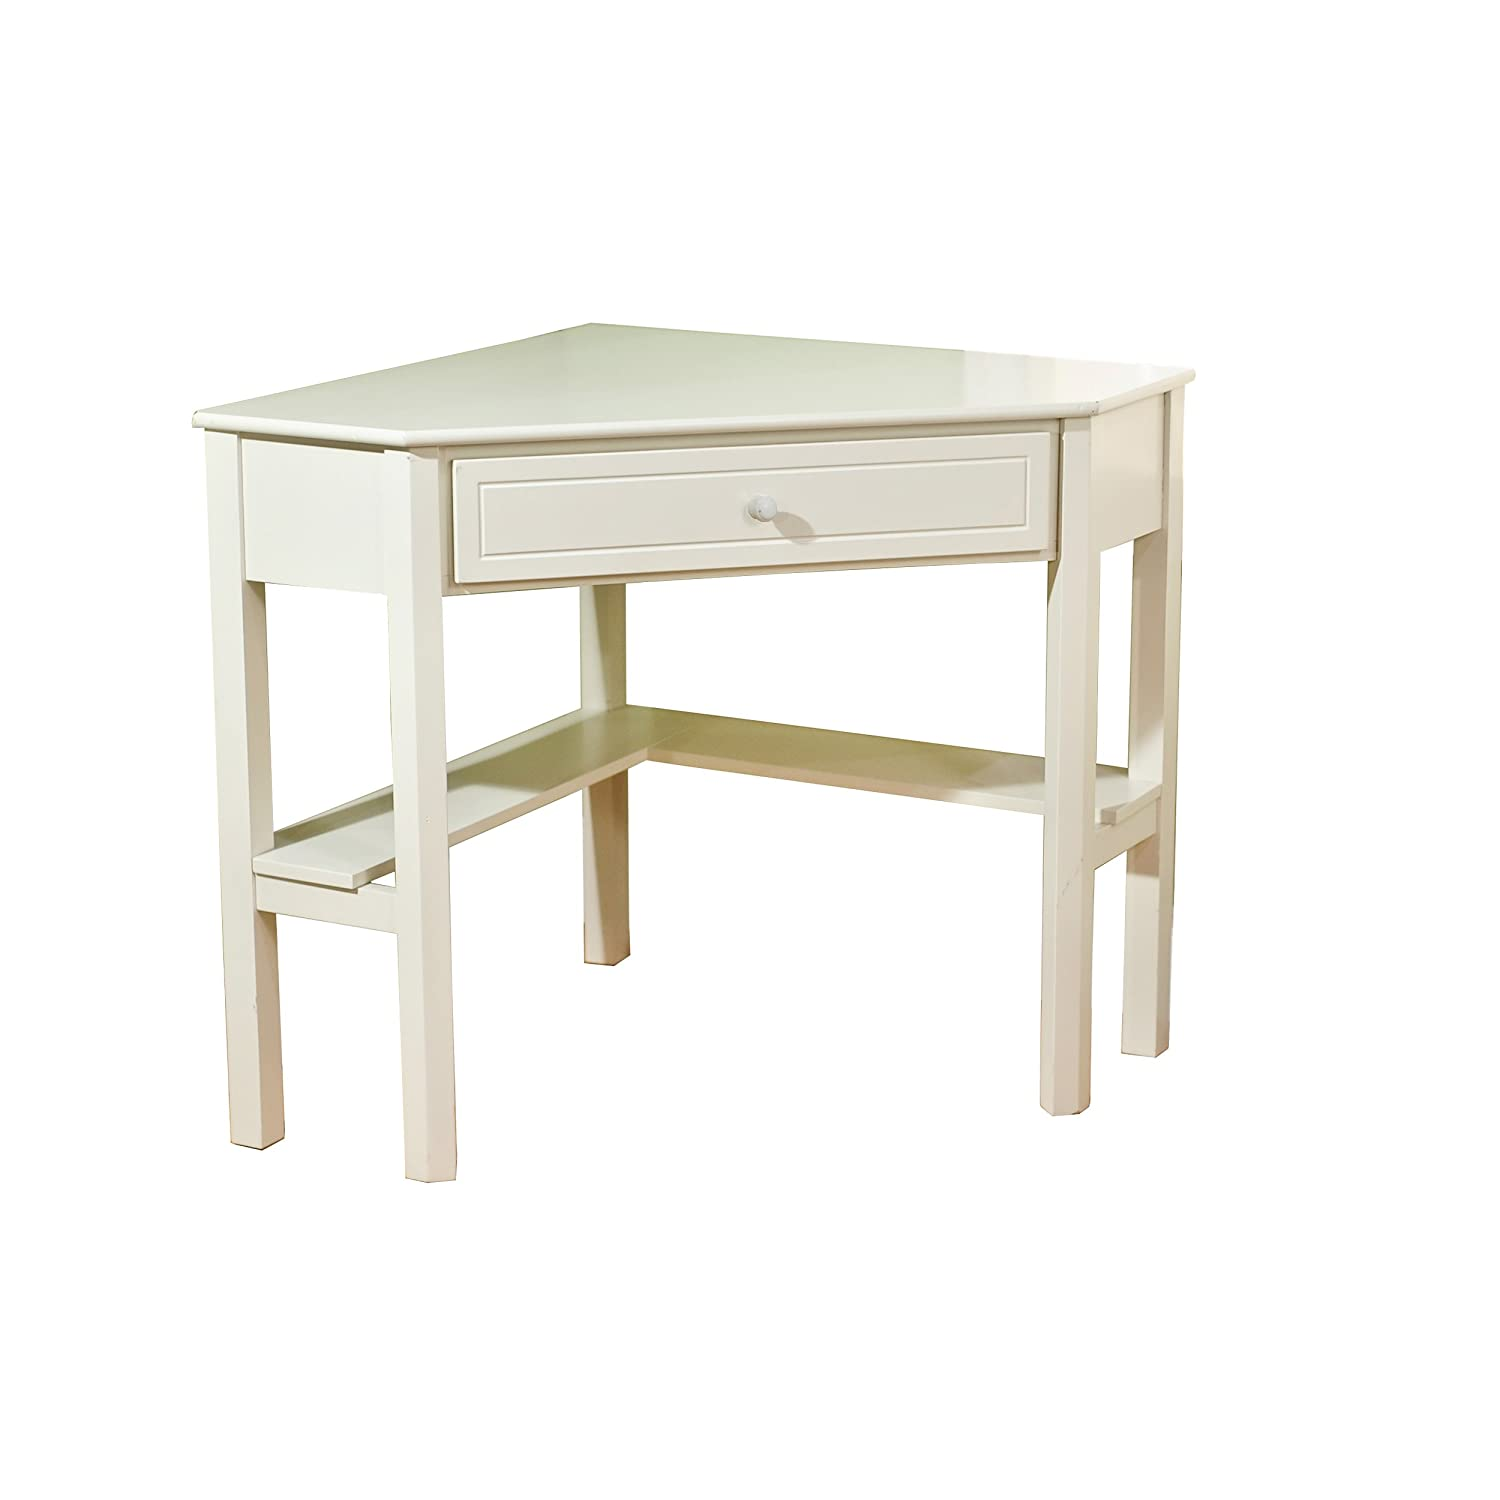 target marketing systems wood corner desk with one drawer and one storage shelf antique white finish